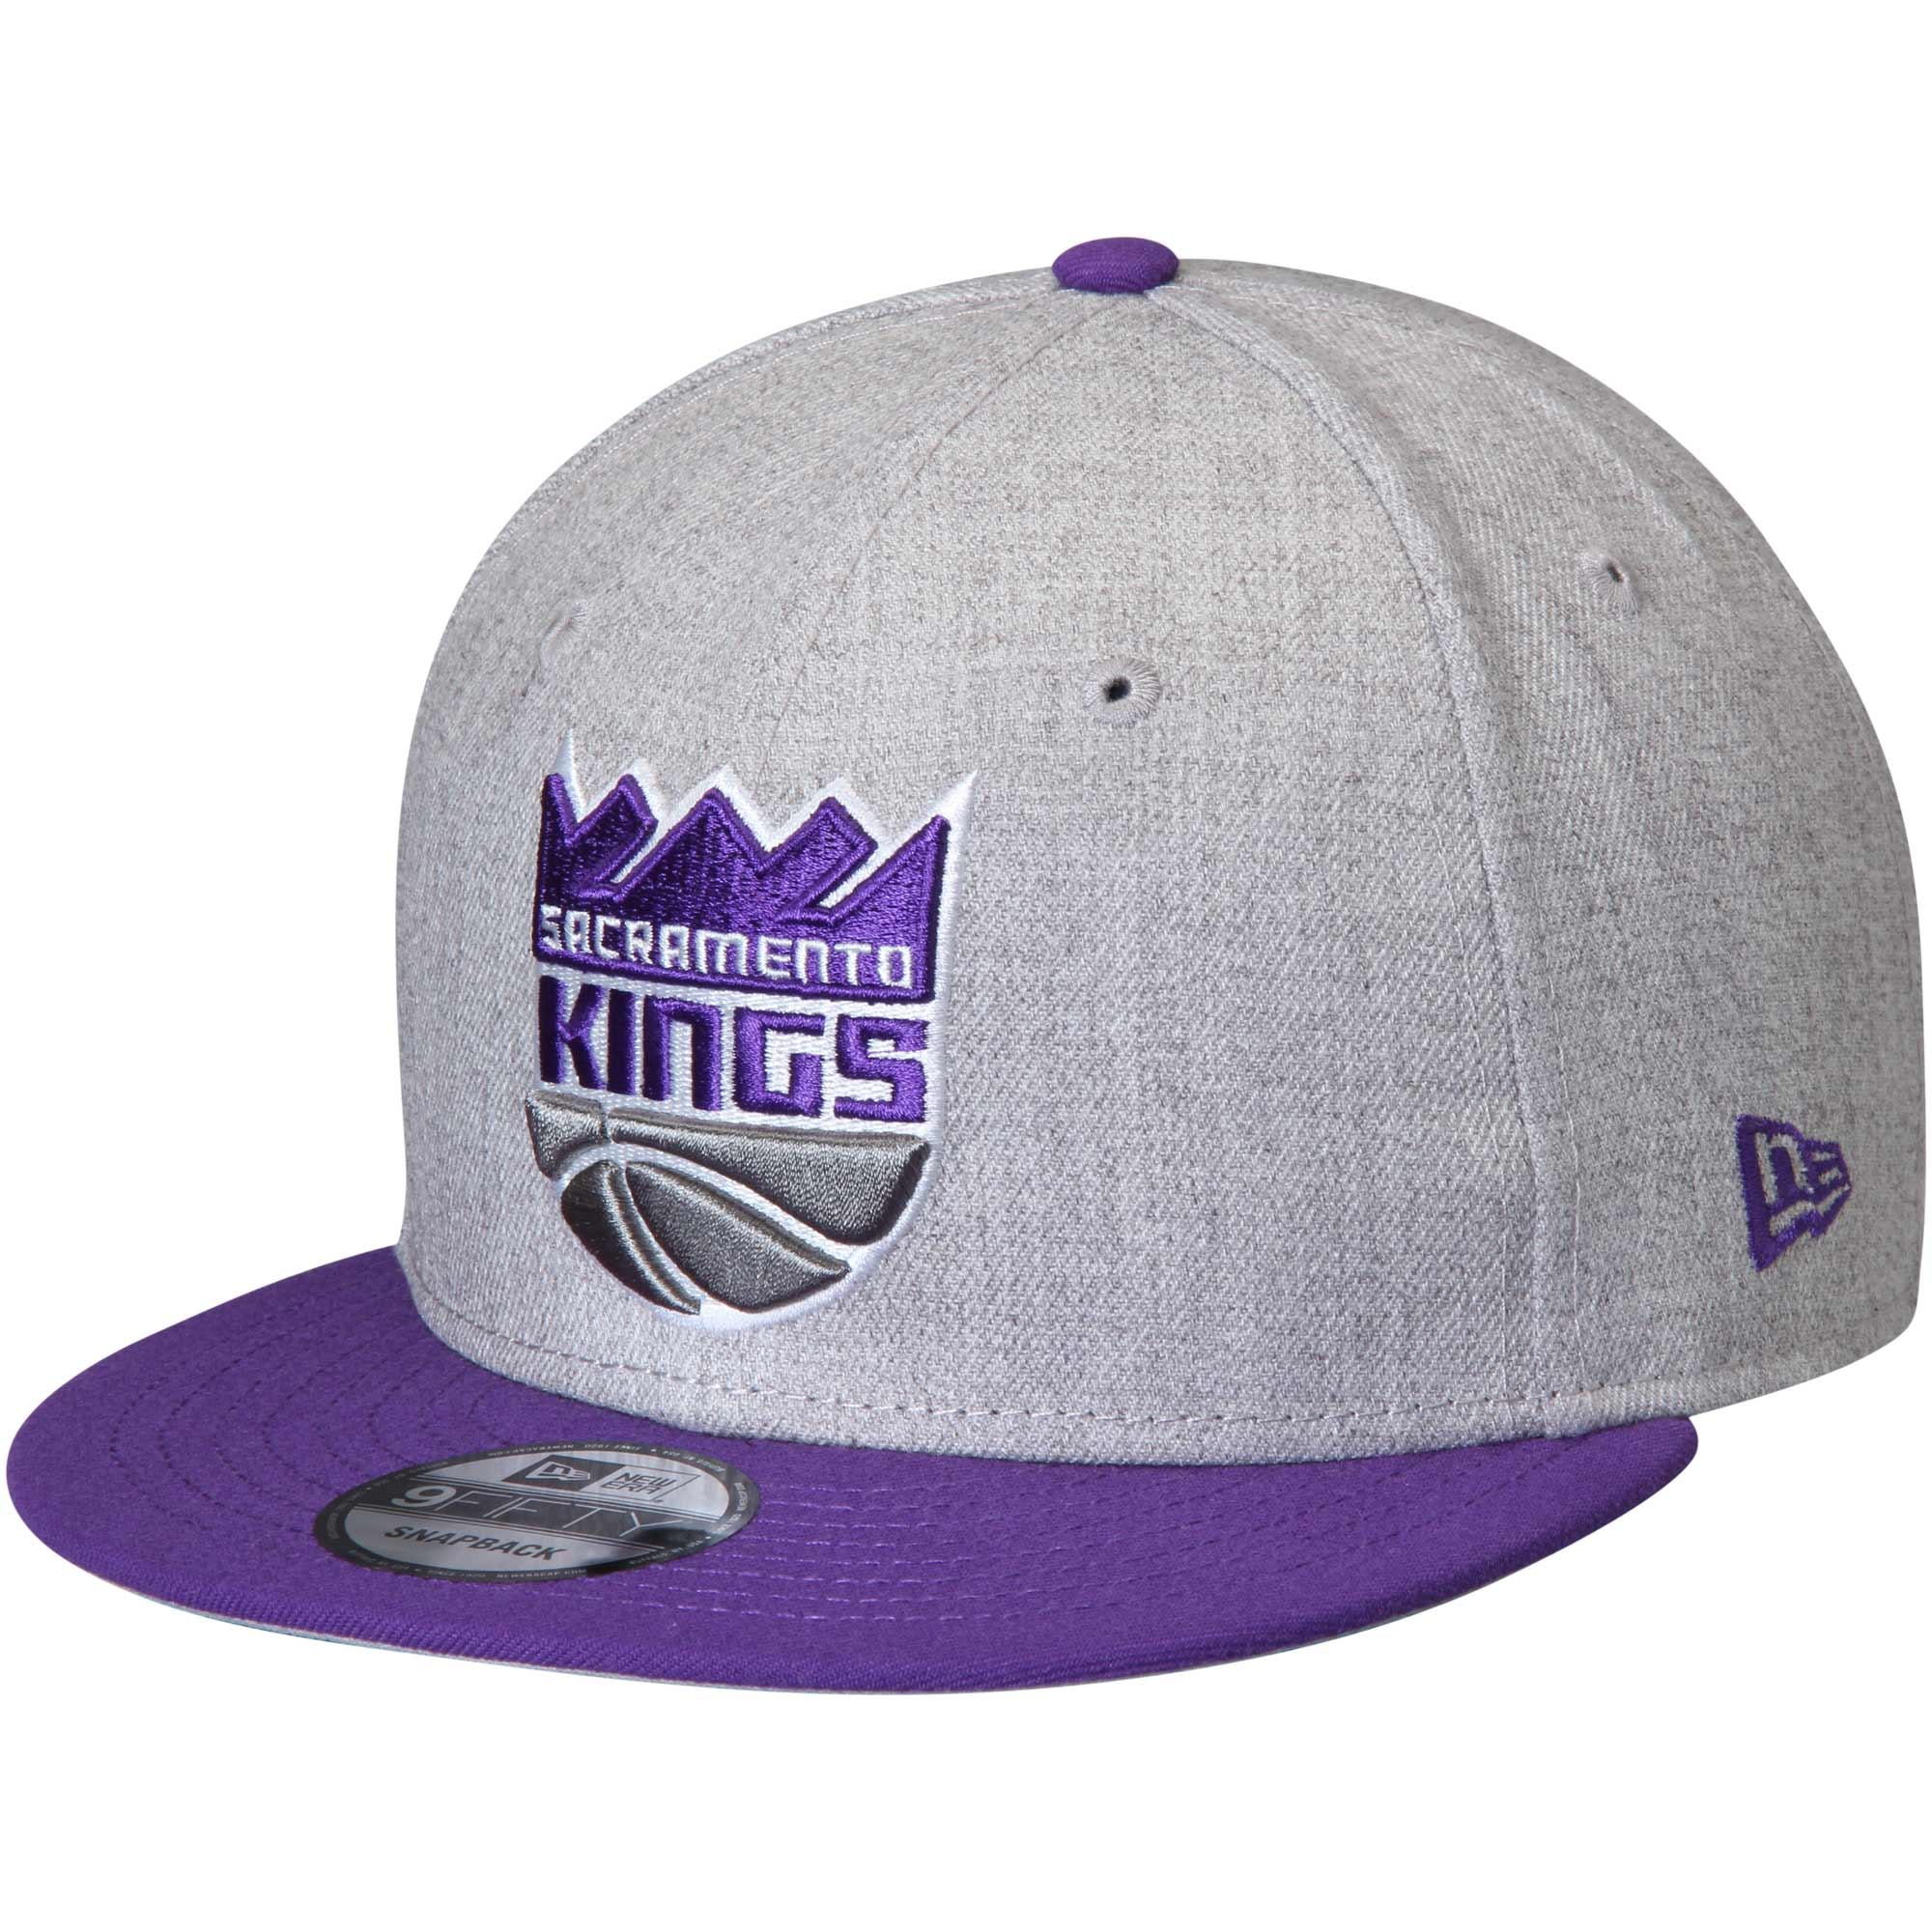 Sacramento Kings New Era 2-Tone 9FIFTY Adjustable Snapback Hat - Heathered Gray/Purple